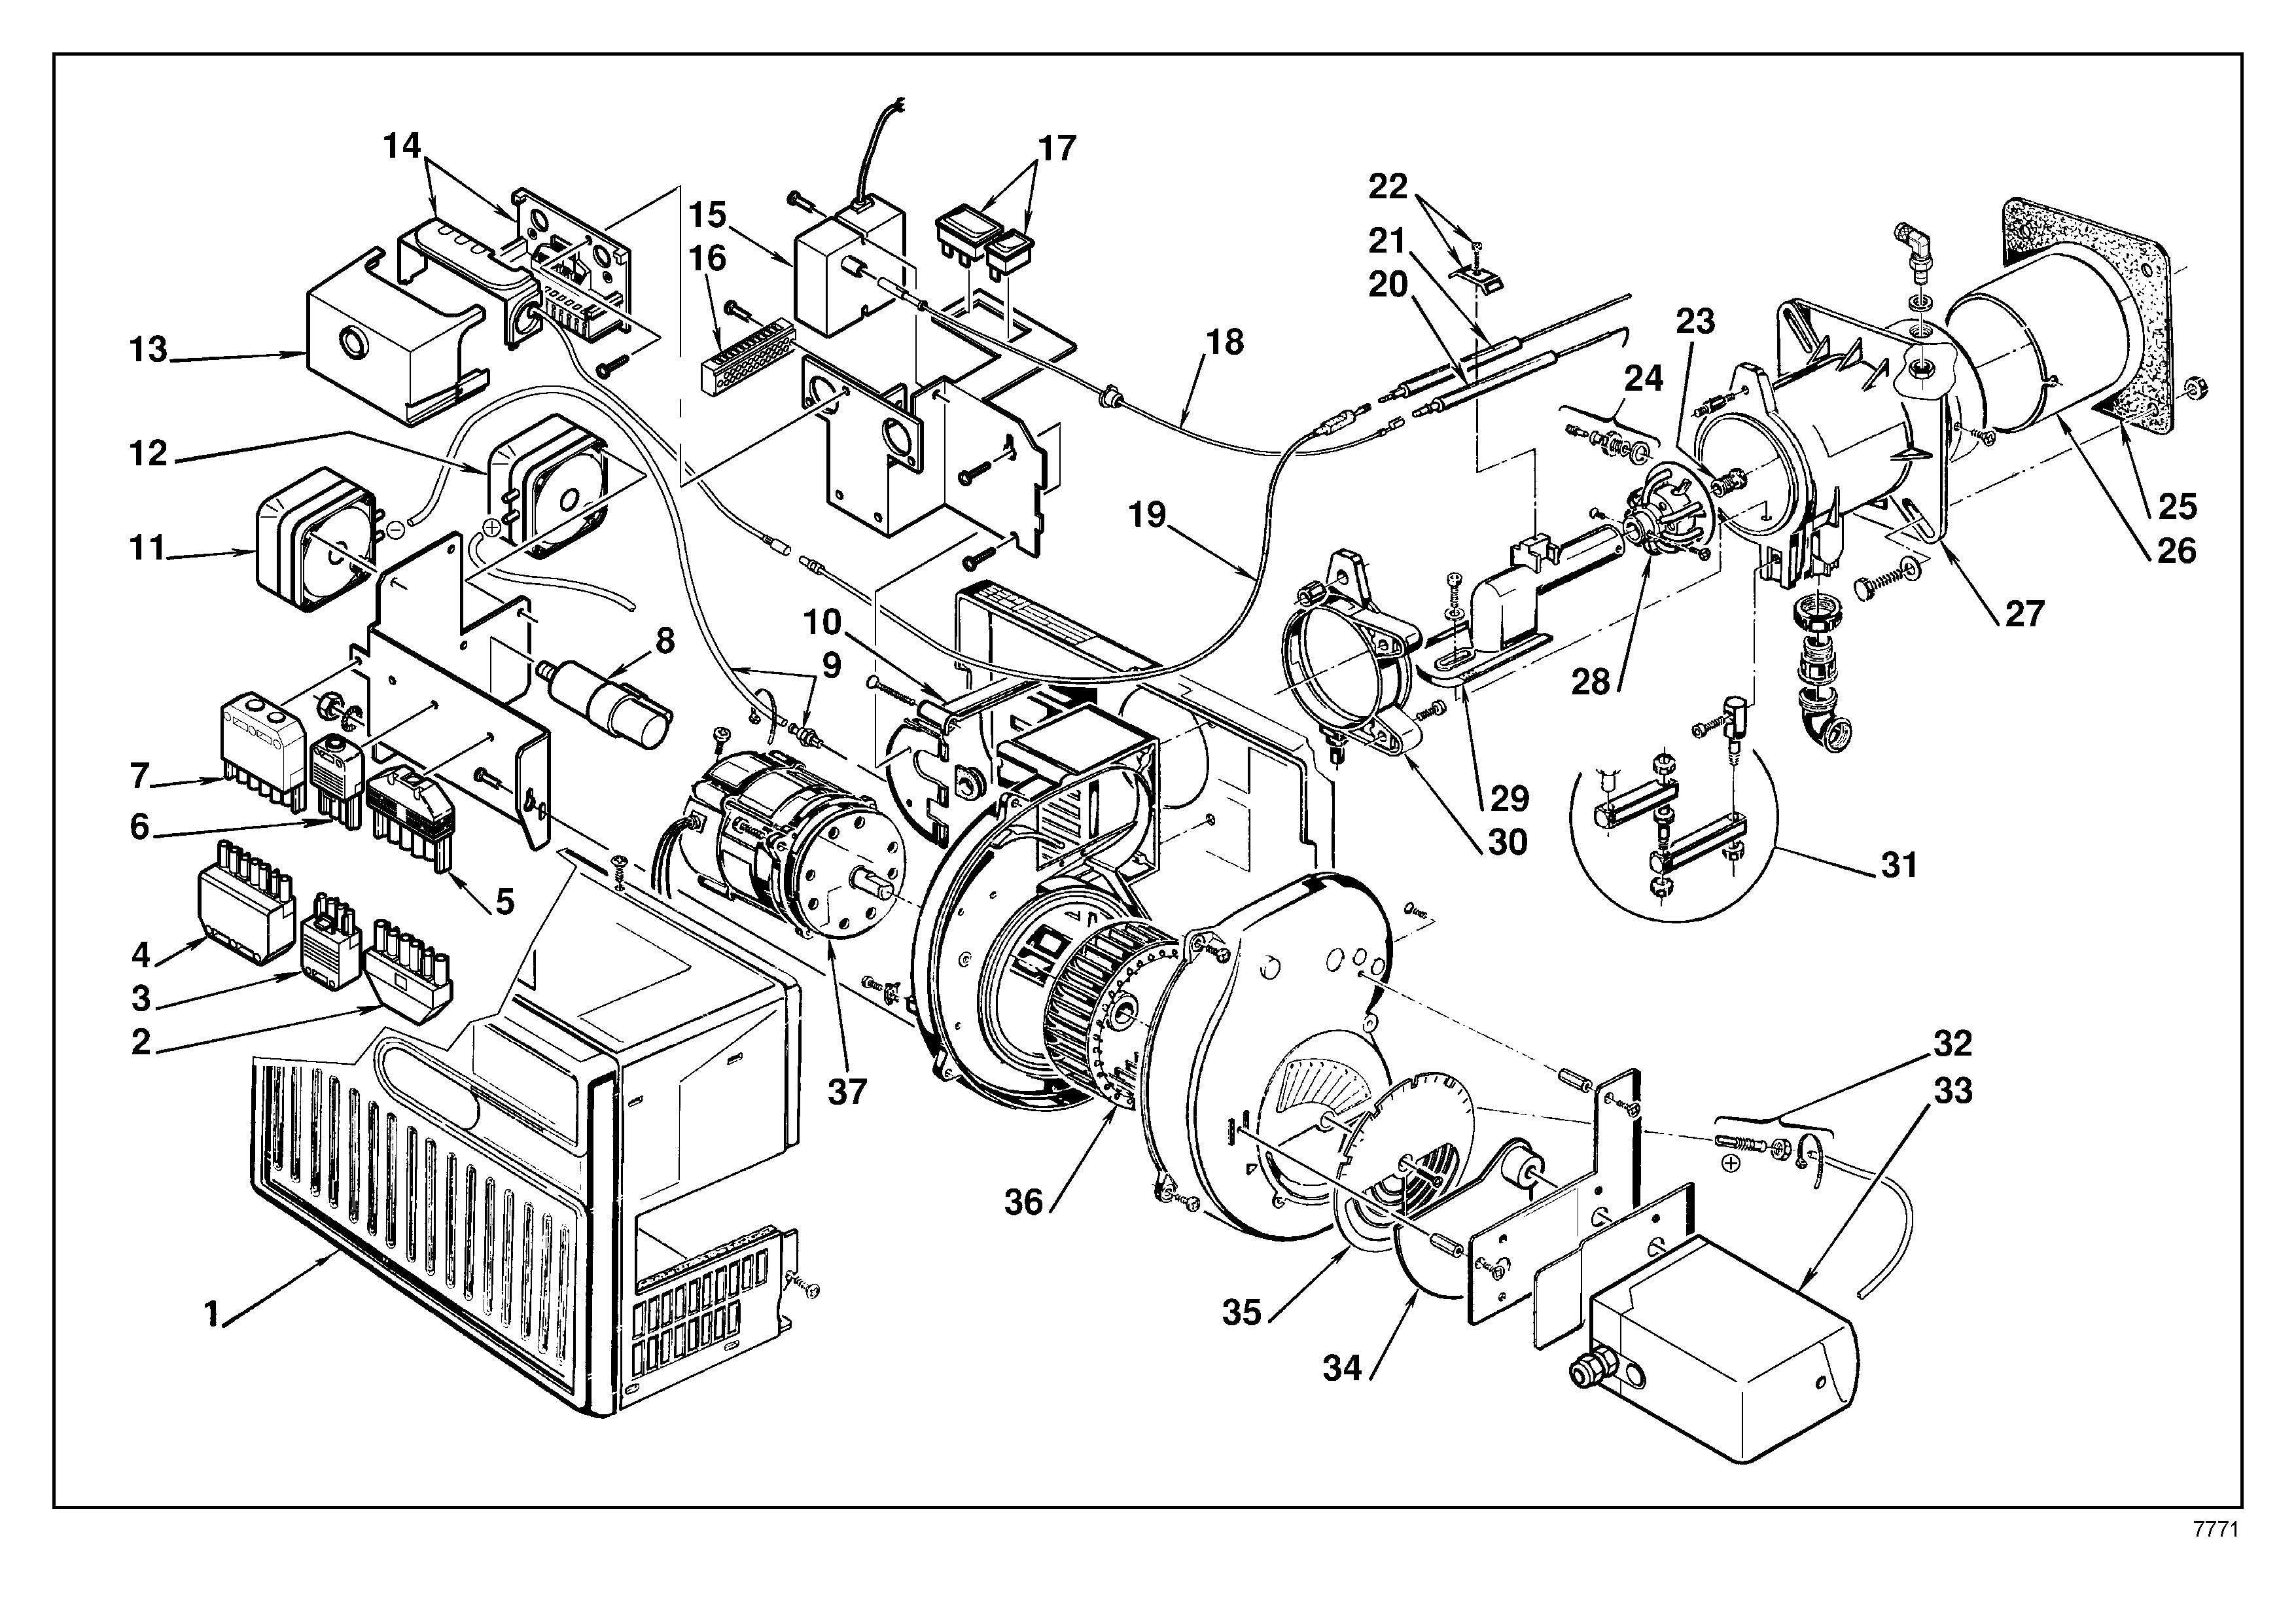 Product Page Motor Repalcement Parts And Diagram On Dc Servo Spares